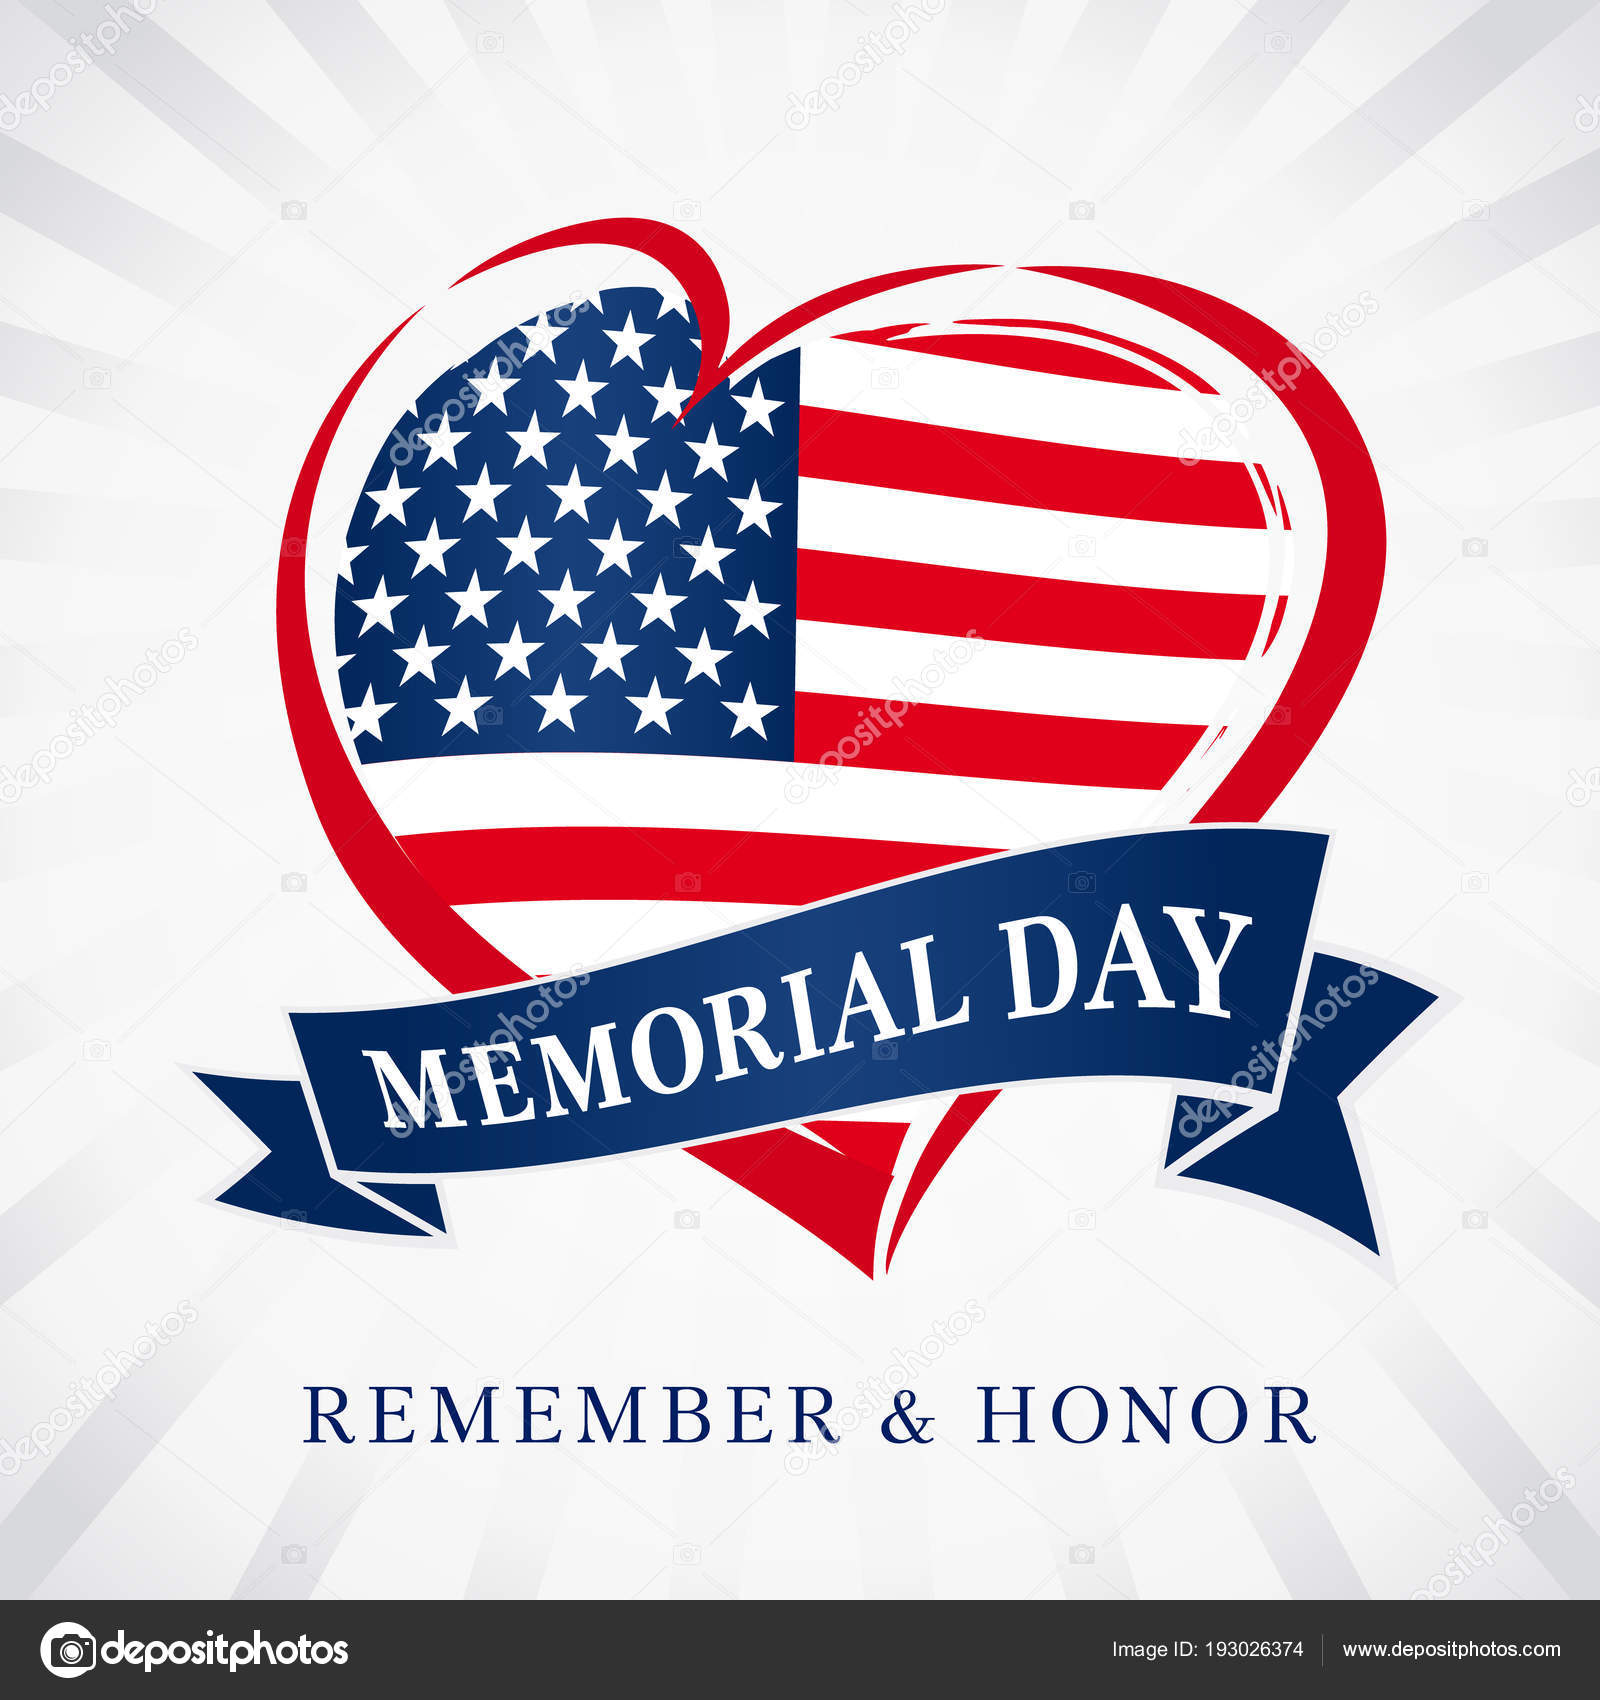 209f5511dcb8 Memorial Day Remember Honor Heart Flag Light Beams Banner Happy ...